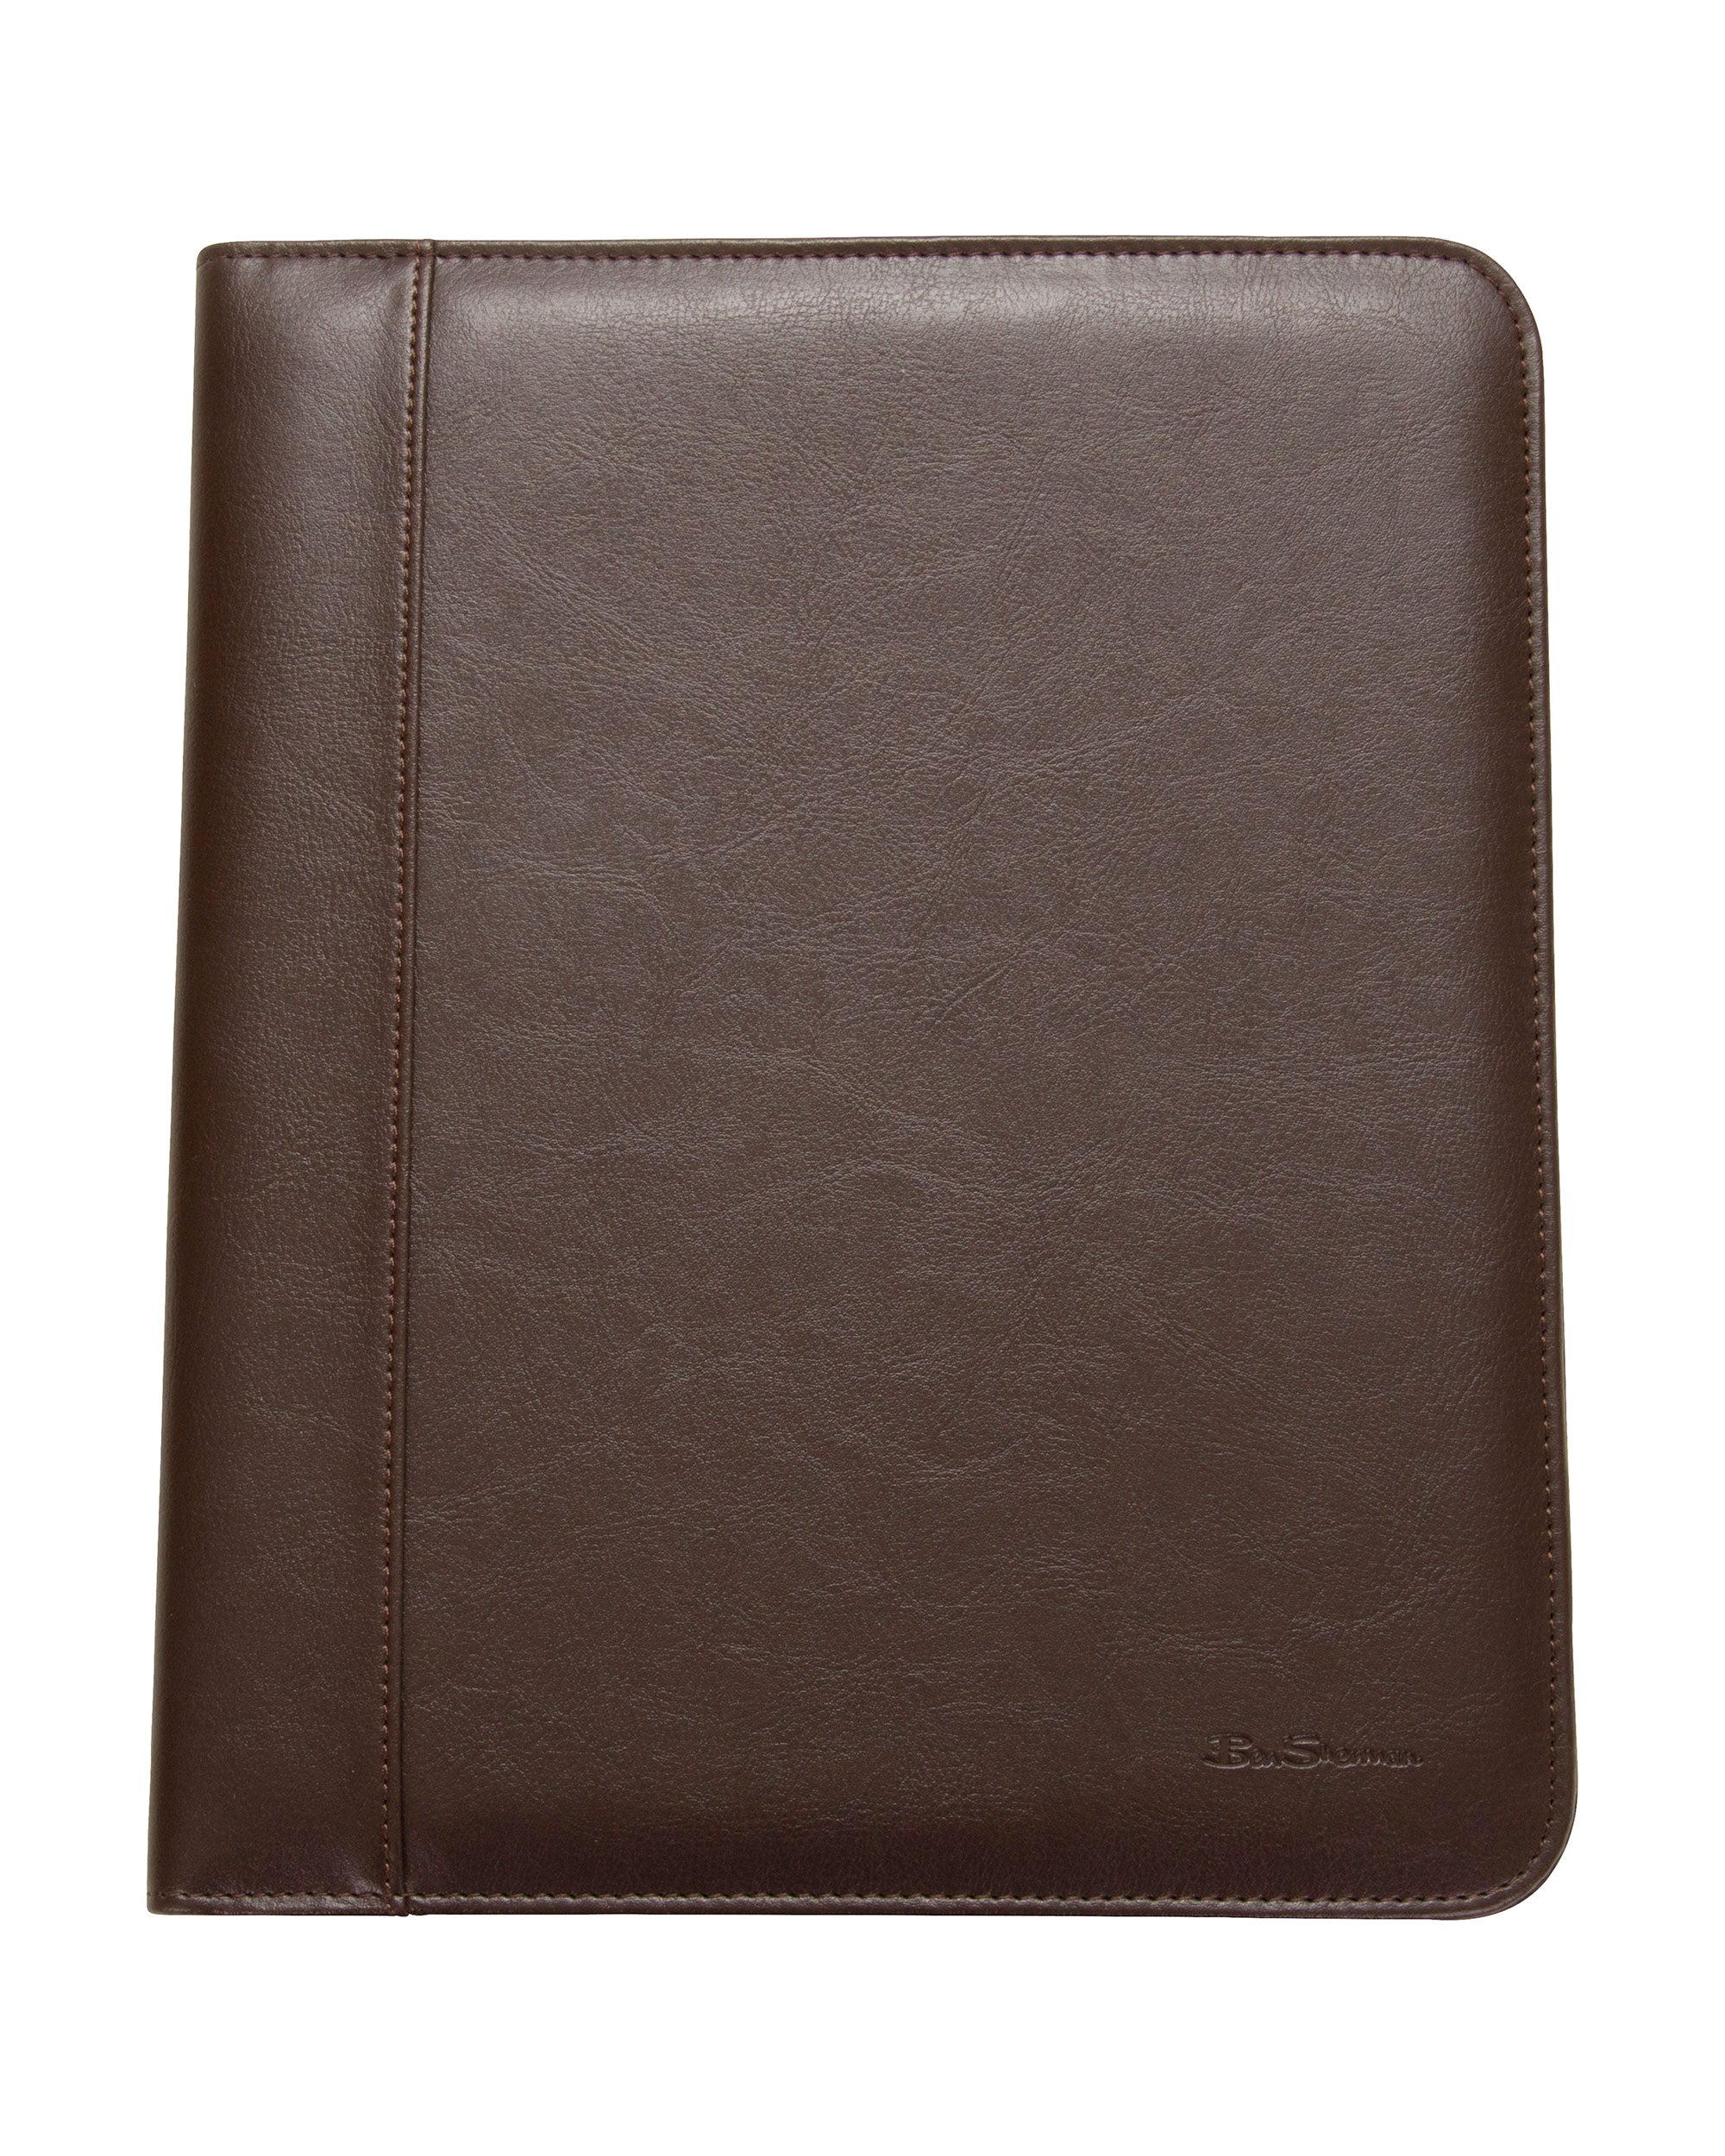 Pebbled Vegan-Leather Open-Style Classic-Size Bifold Writing Pad - Brown